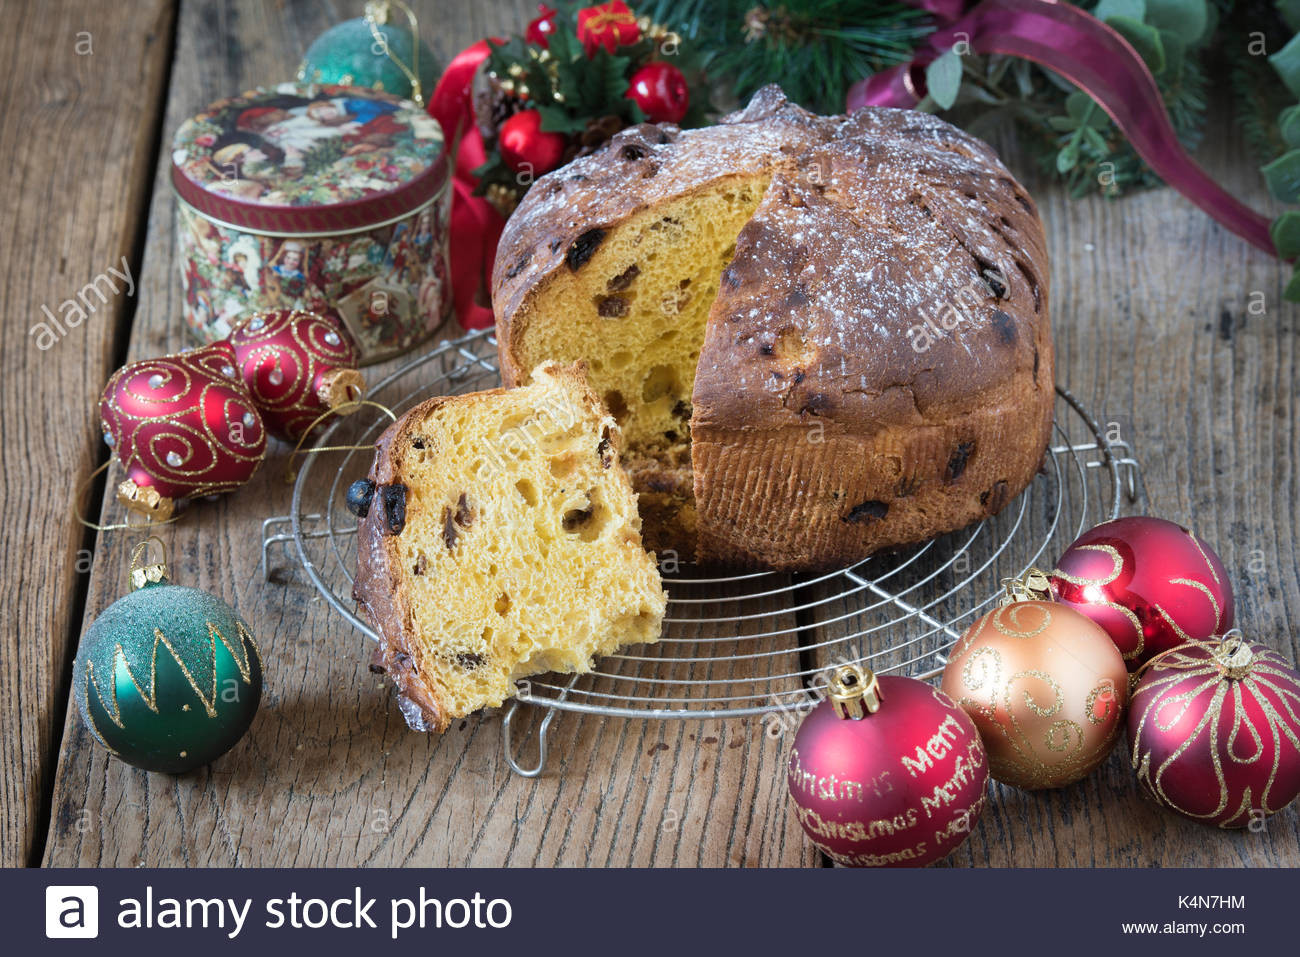 Italian Sweet Bread Loaf Made For Christmas  Italy Christmas Stock s & Italy Christmas Stock